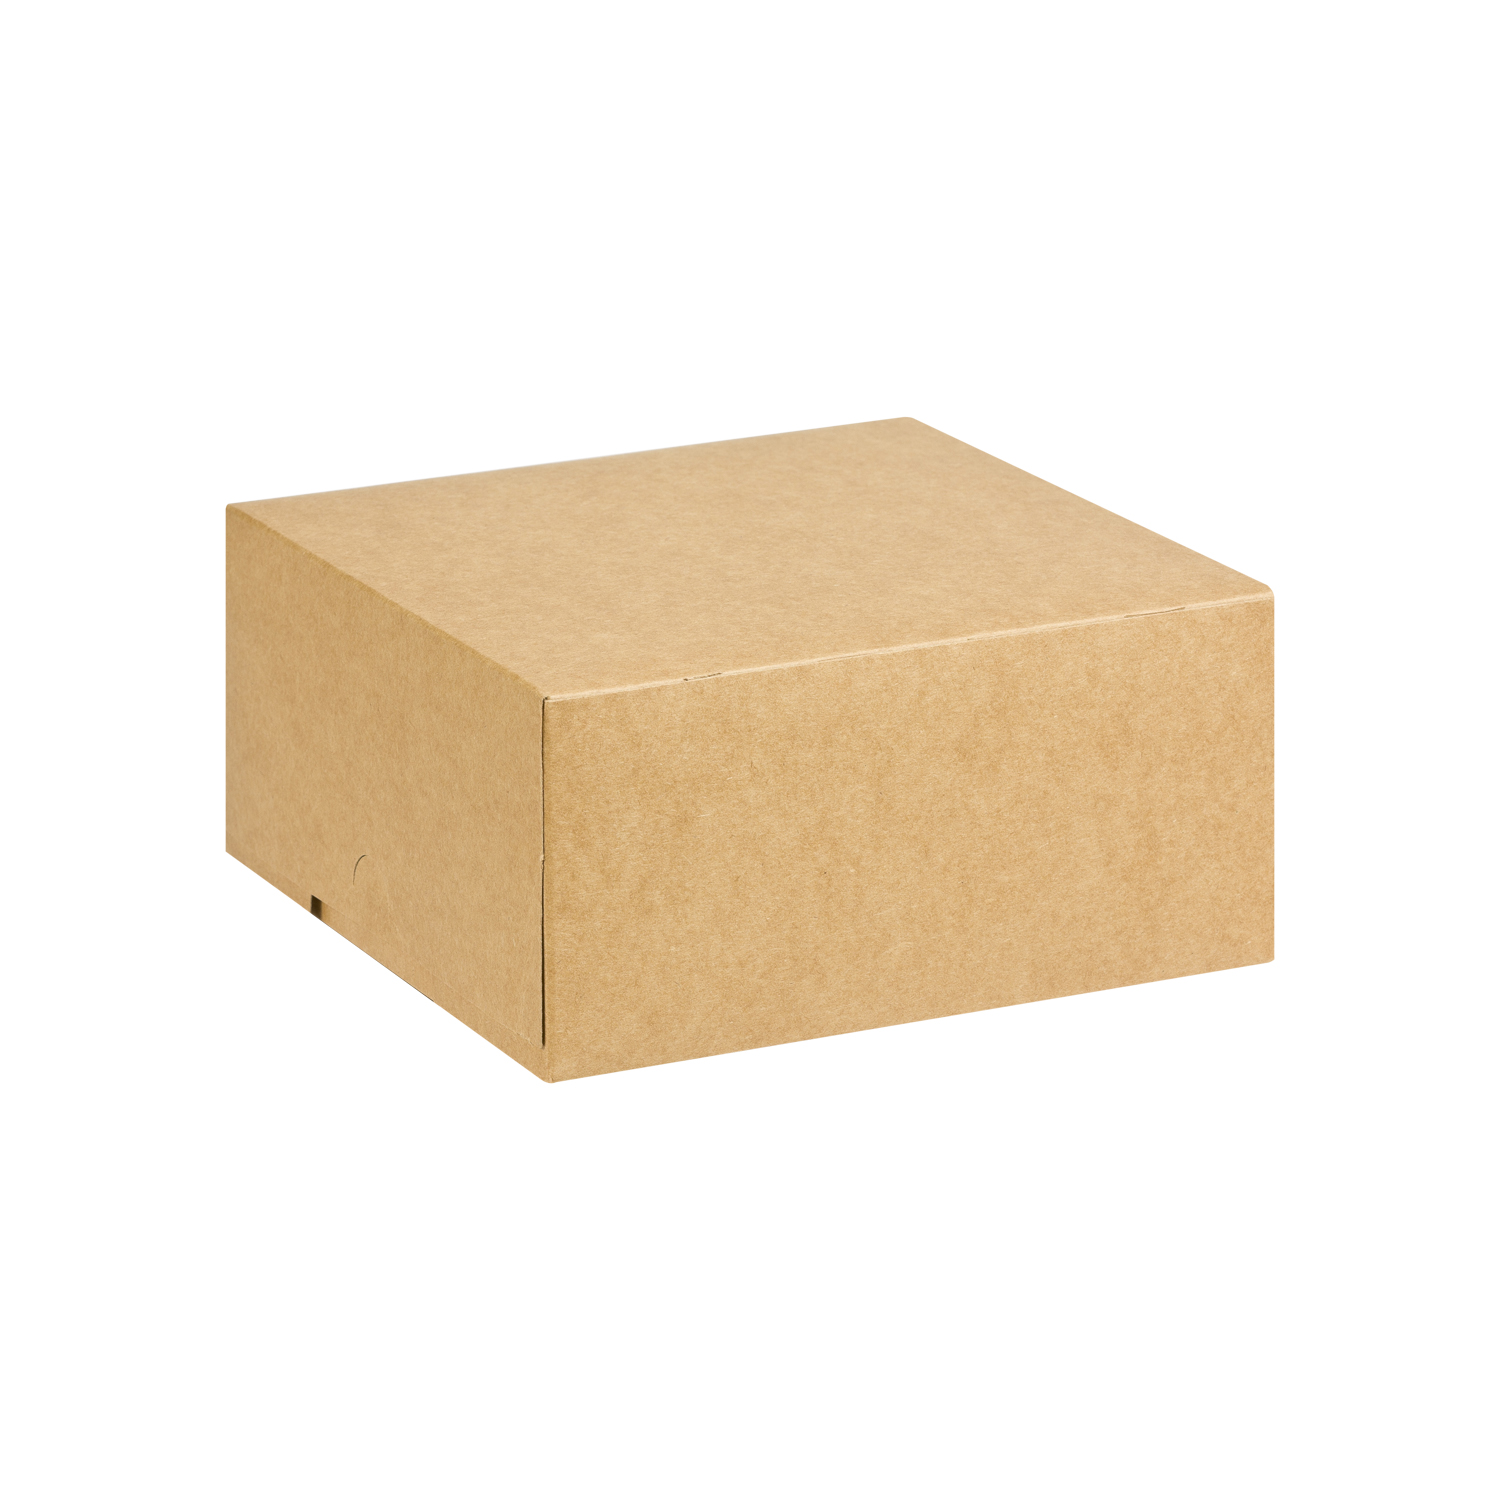 Eco Brown Medium Square Cake Box Merrypak